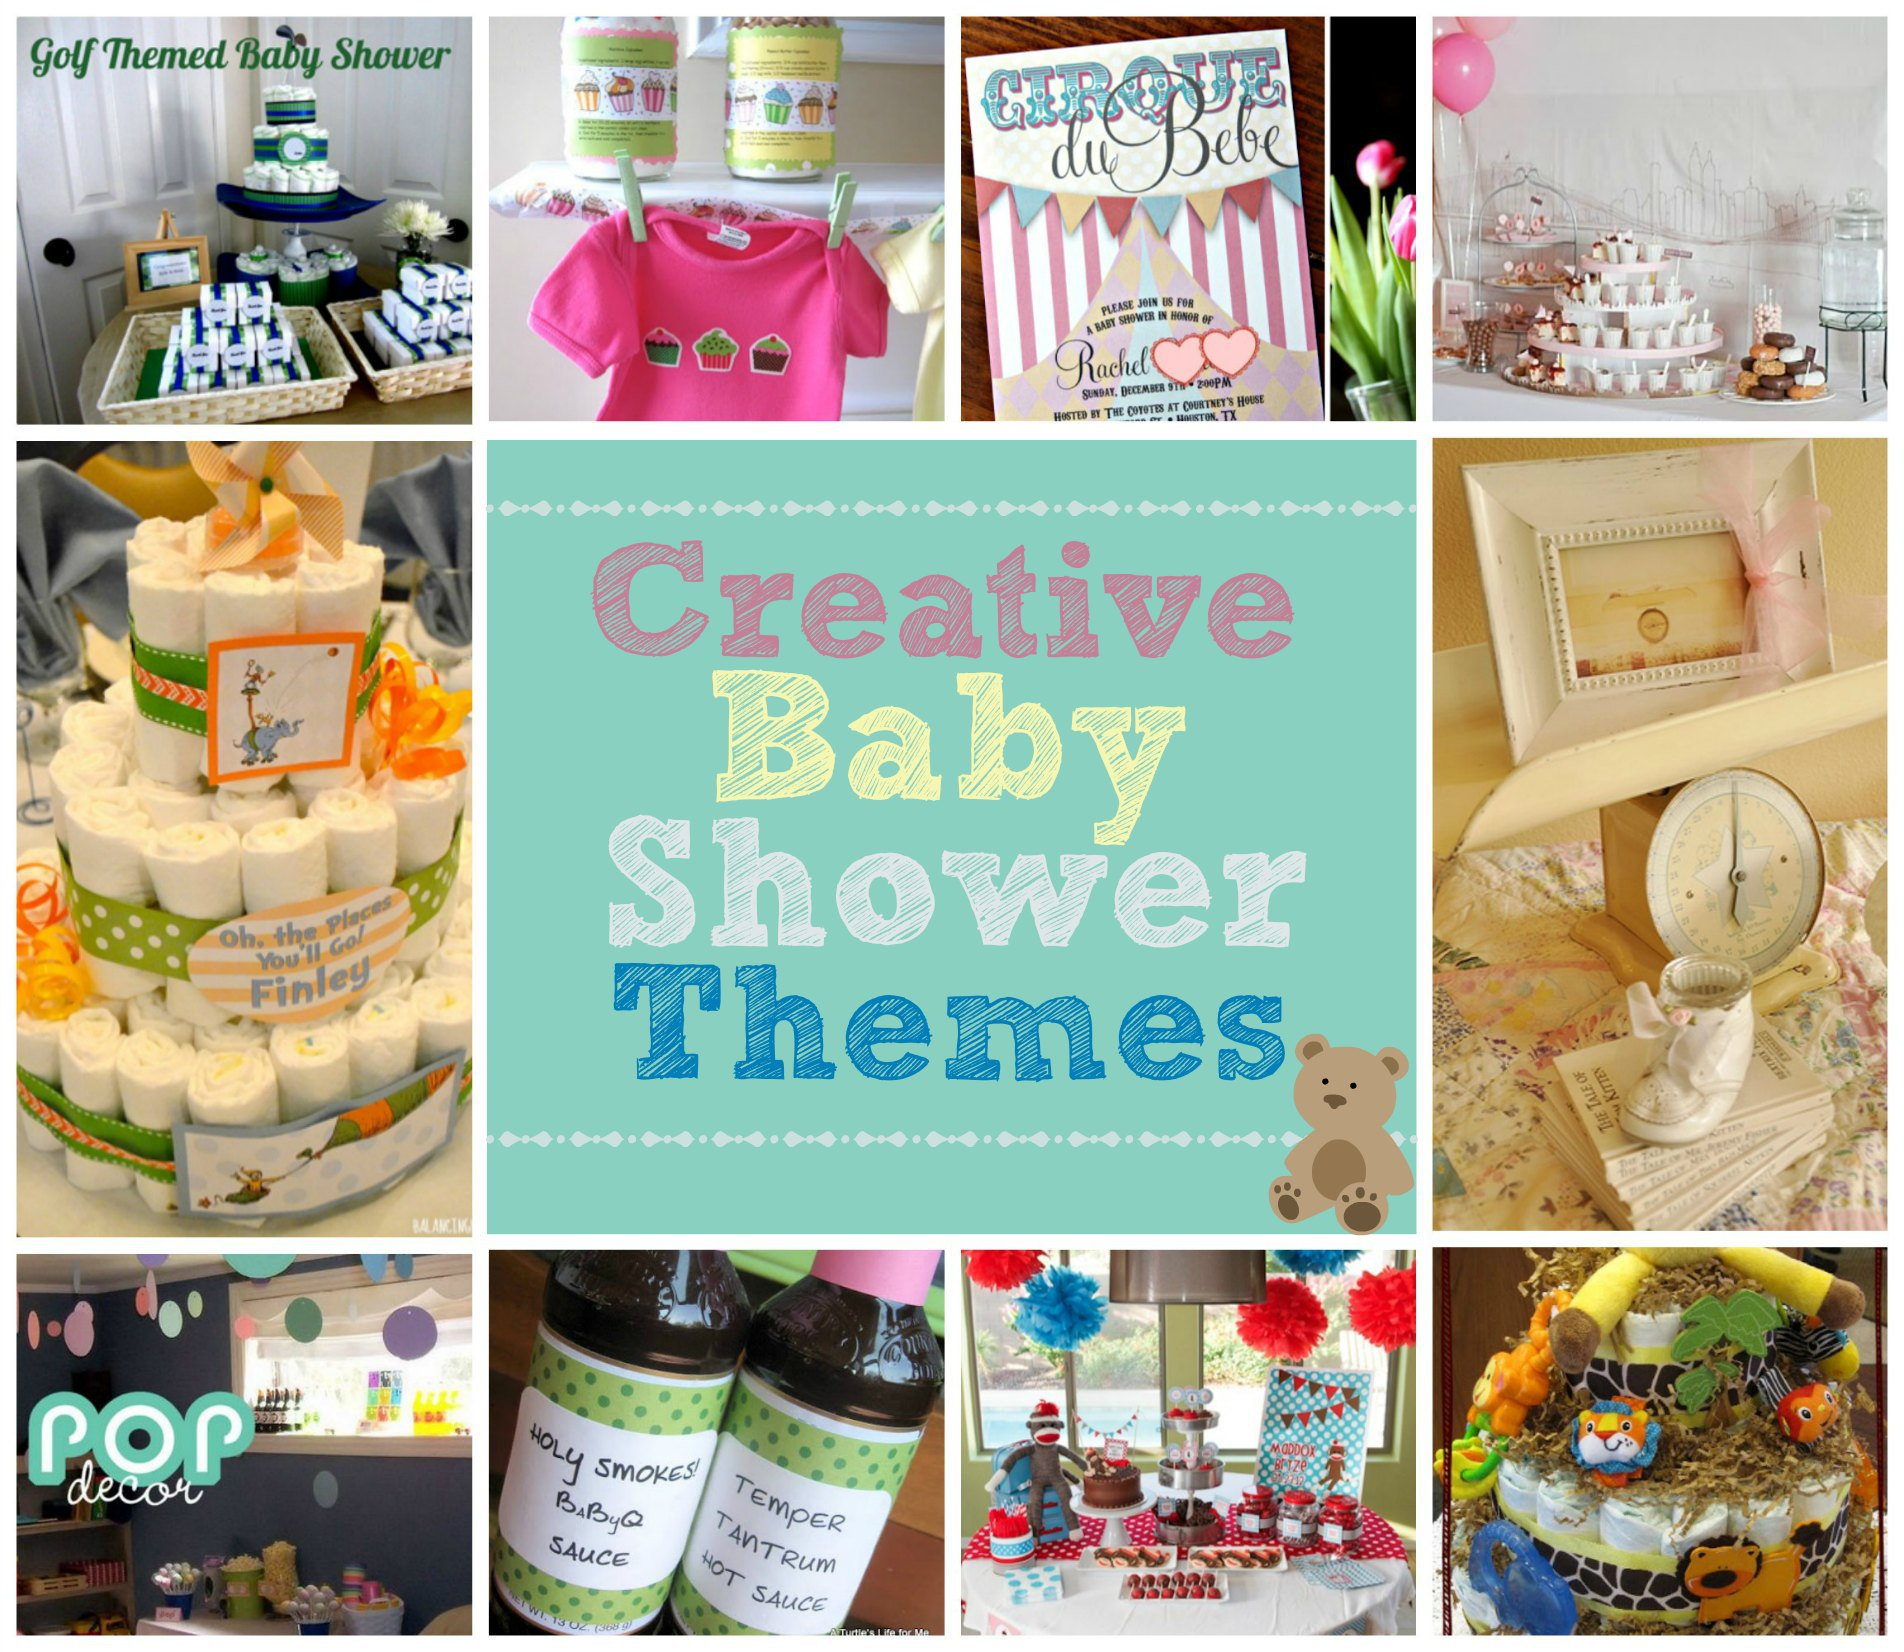 creative co ed baby shower ideas  best showers design, Baby shower